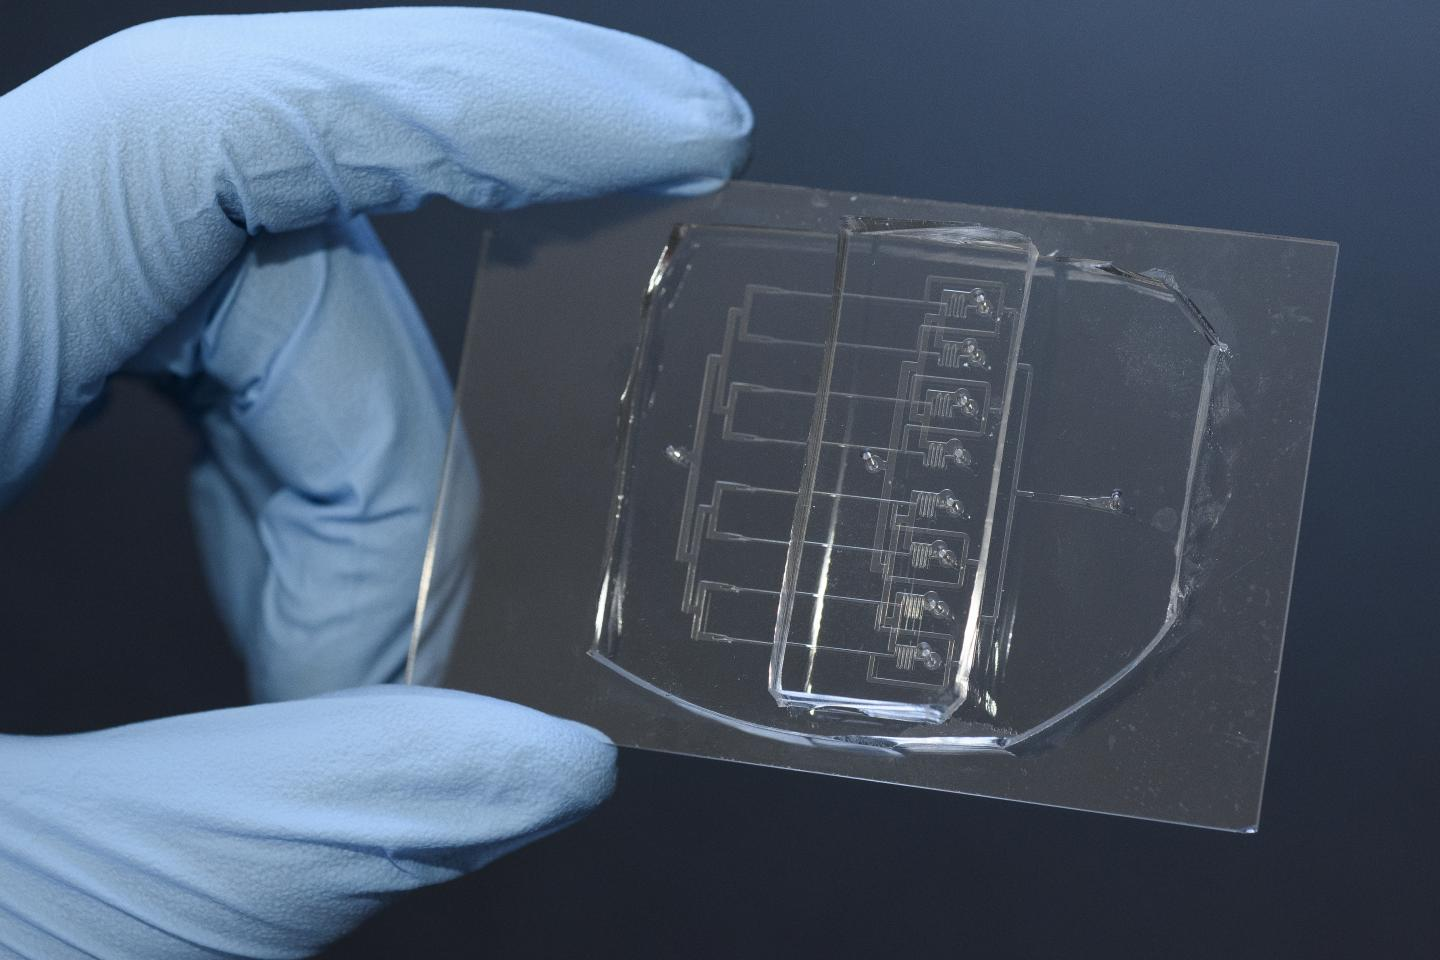 Researchers led by Sindy Tang, assistant professor of mechanical engineering at Stanford, have created a new tool for cutting cells, called a microfluidic guillotine. This eight-channel version of their tool can cut cells over 200 times faster than conventional methods. / Credit: L.A. Cicero/Stanford News Service